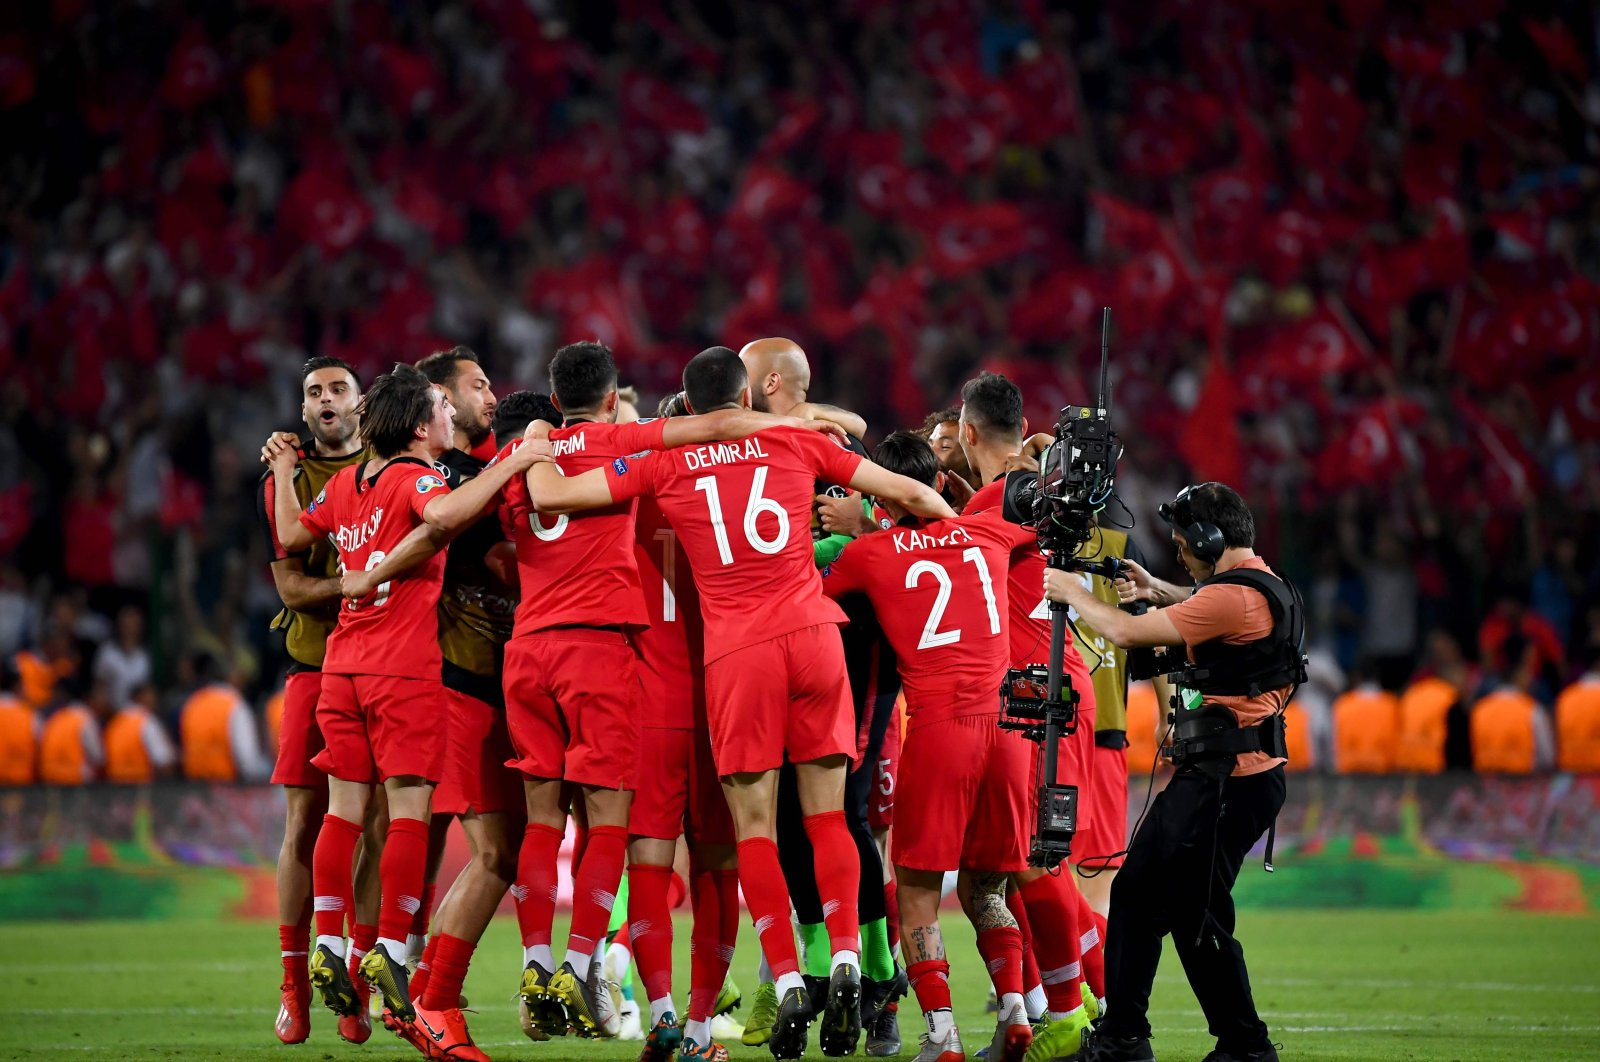 Turkey players celebrate after a Euro 2020 qualification match, in Konya, Turkey, June 8, 2019. (AFP Photo)